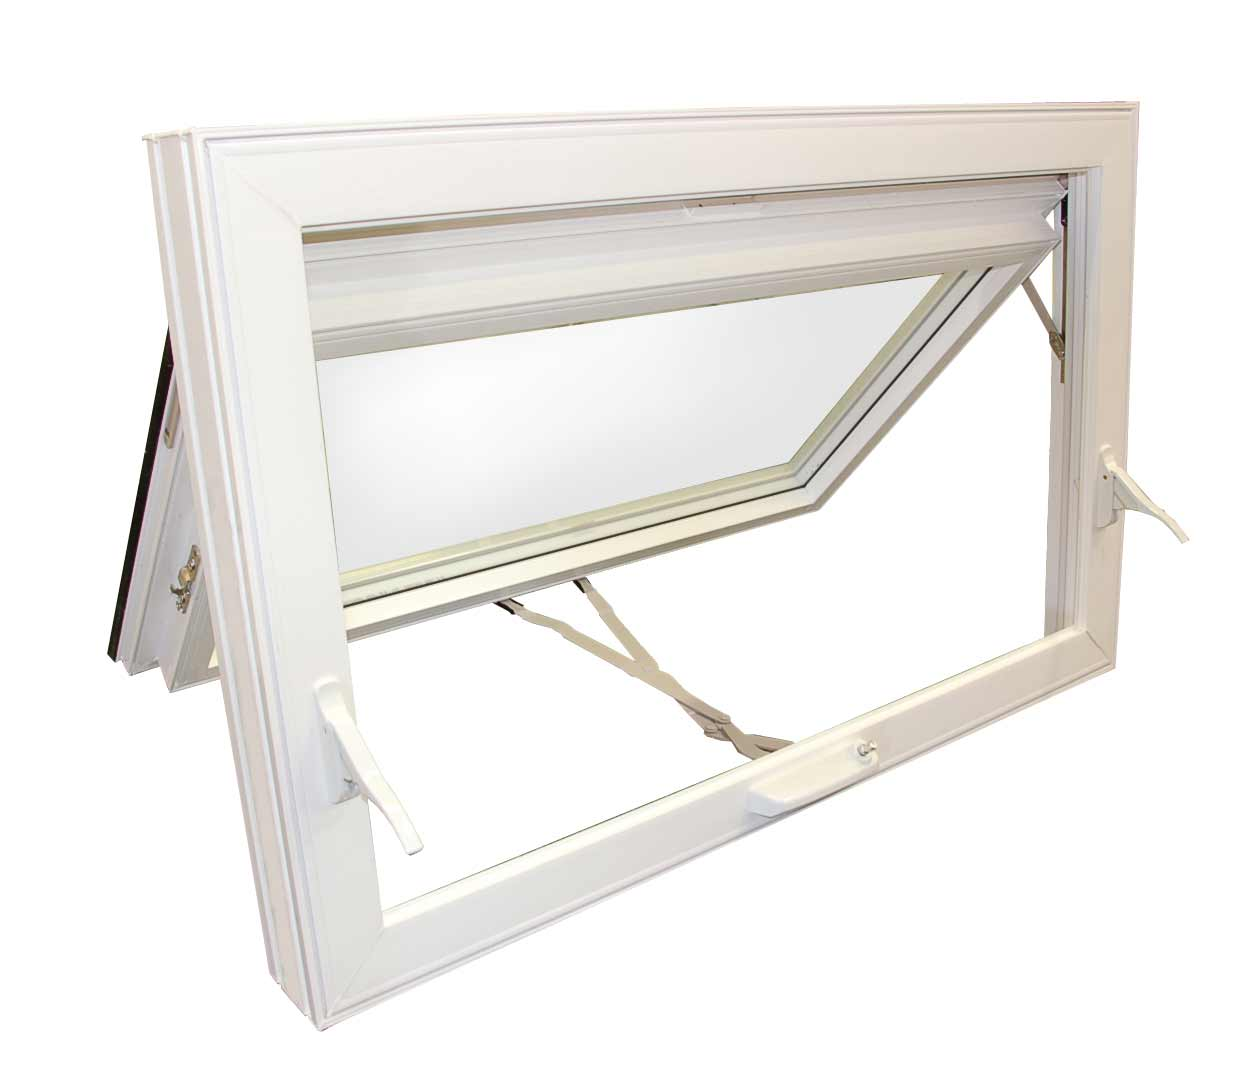 Aluminum Basement Windows